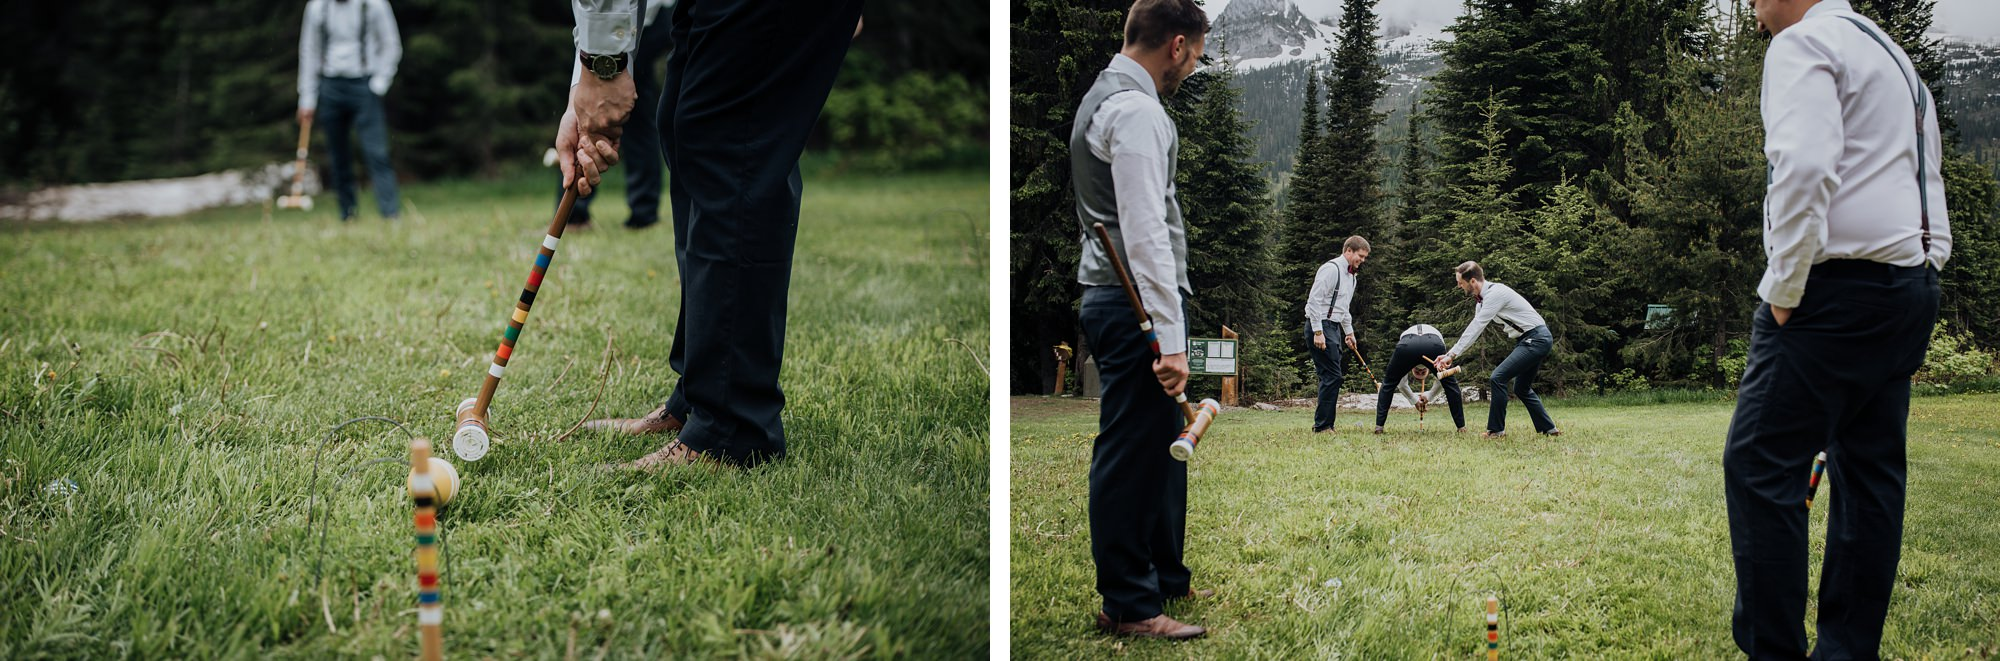 groom and groomsmen playing games at mountain wedding